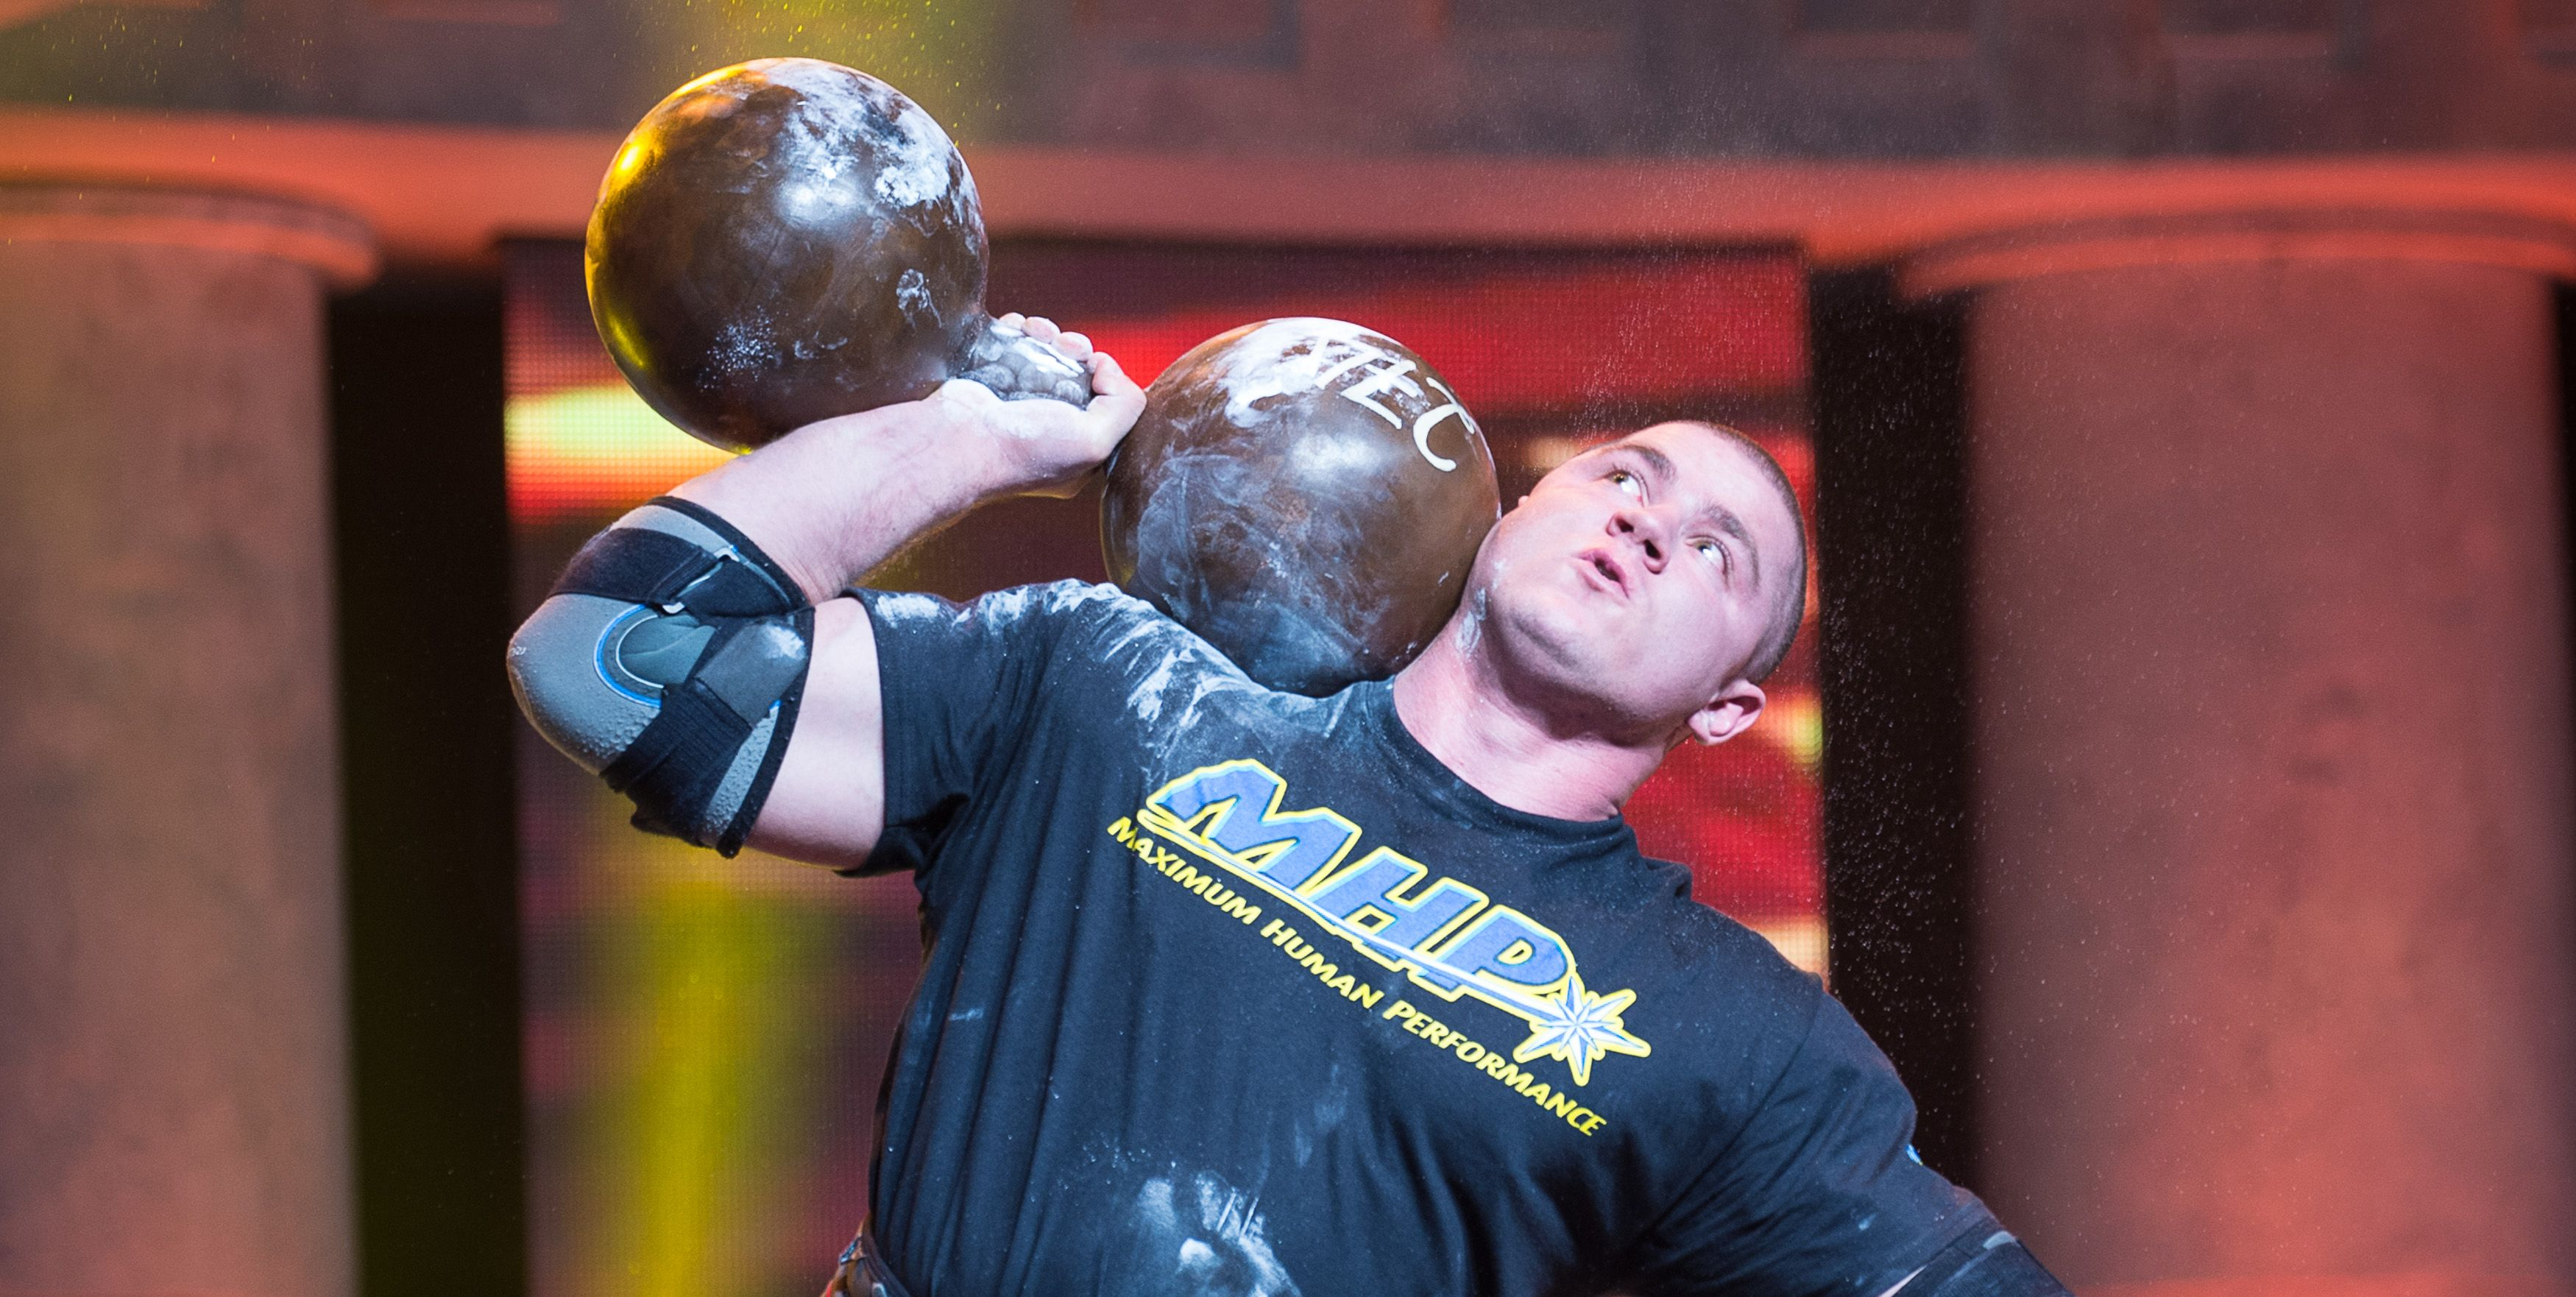 Arnold Sports Festival 2015 - Day 3